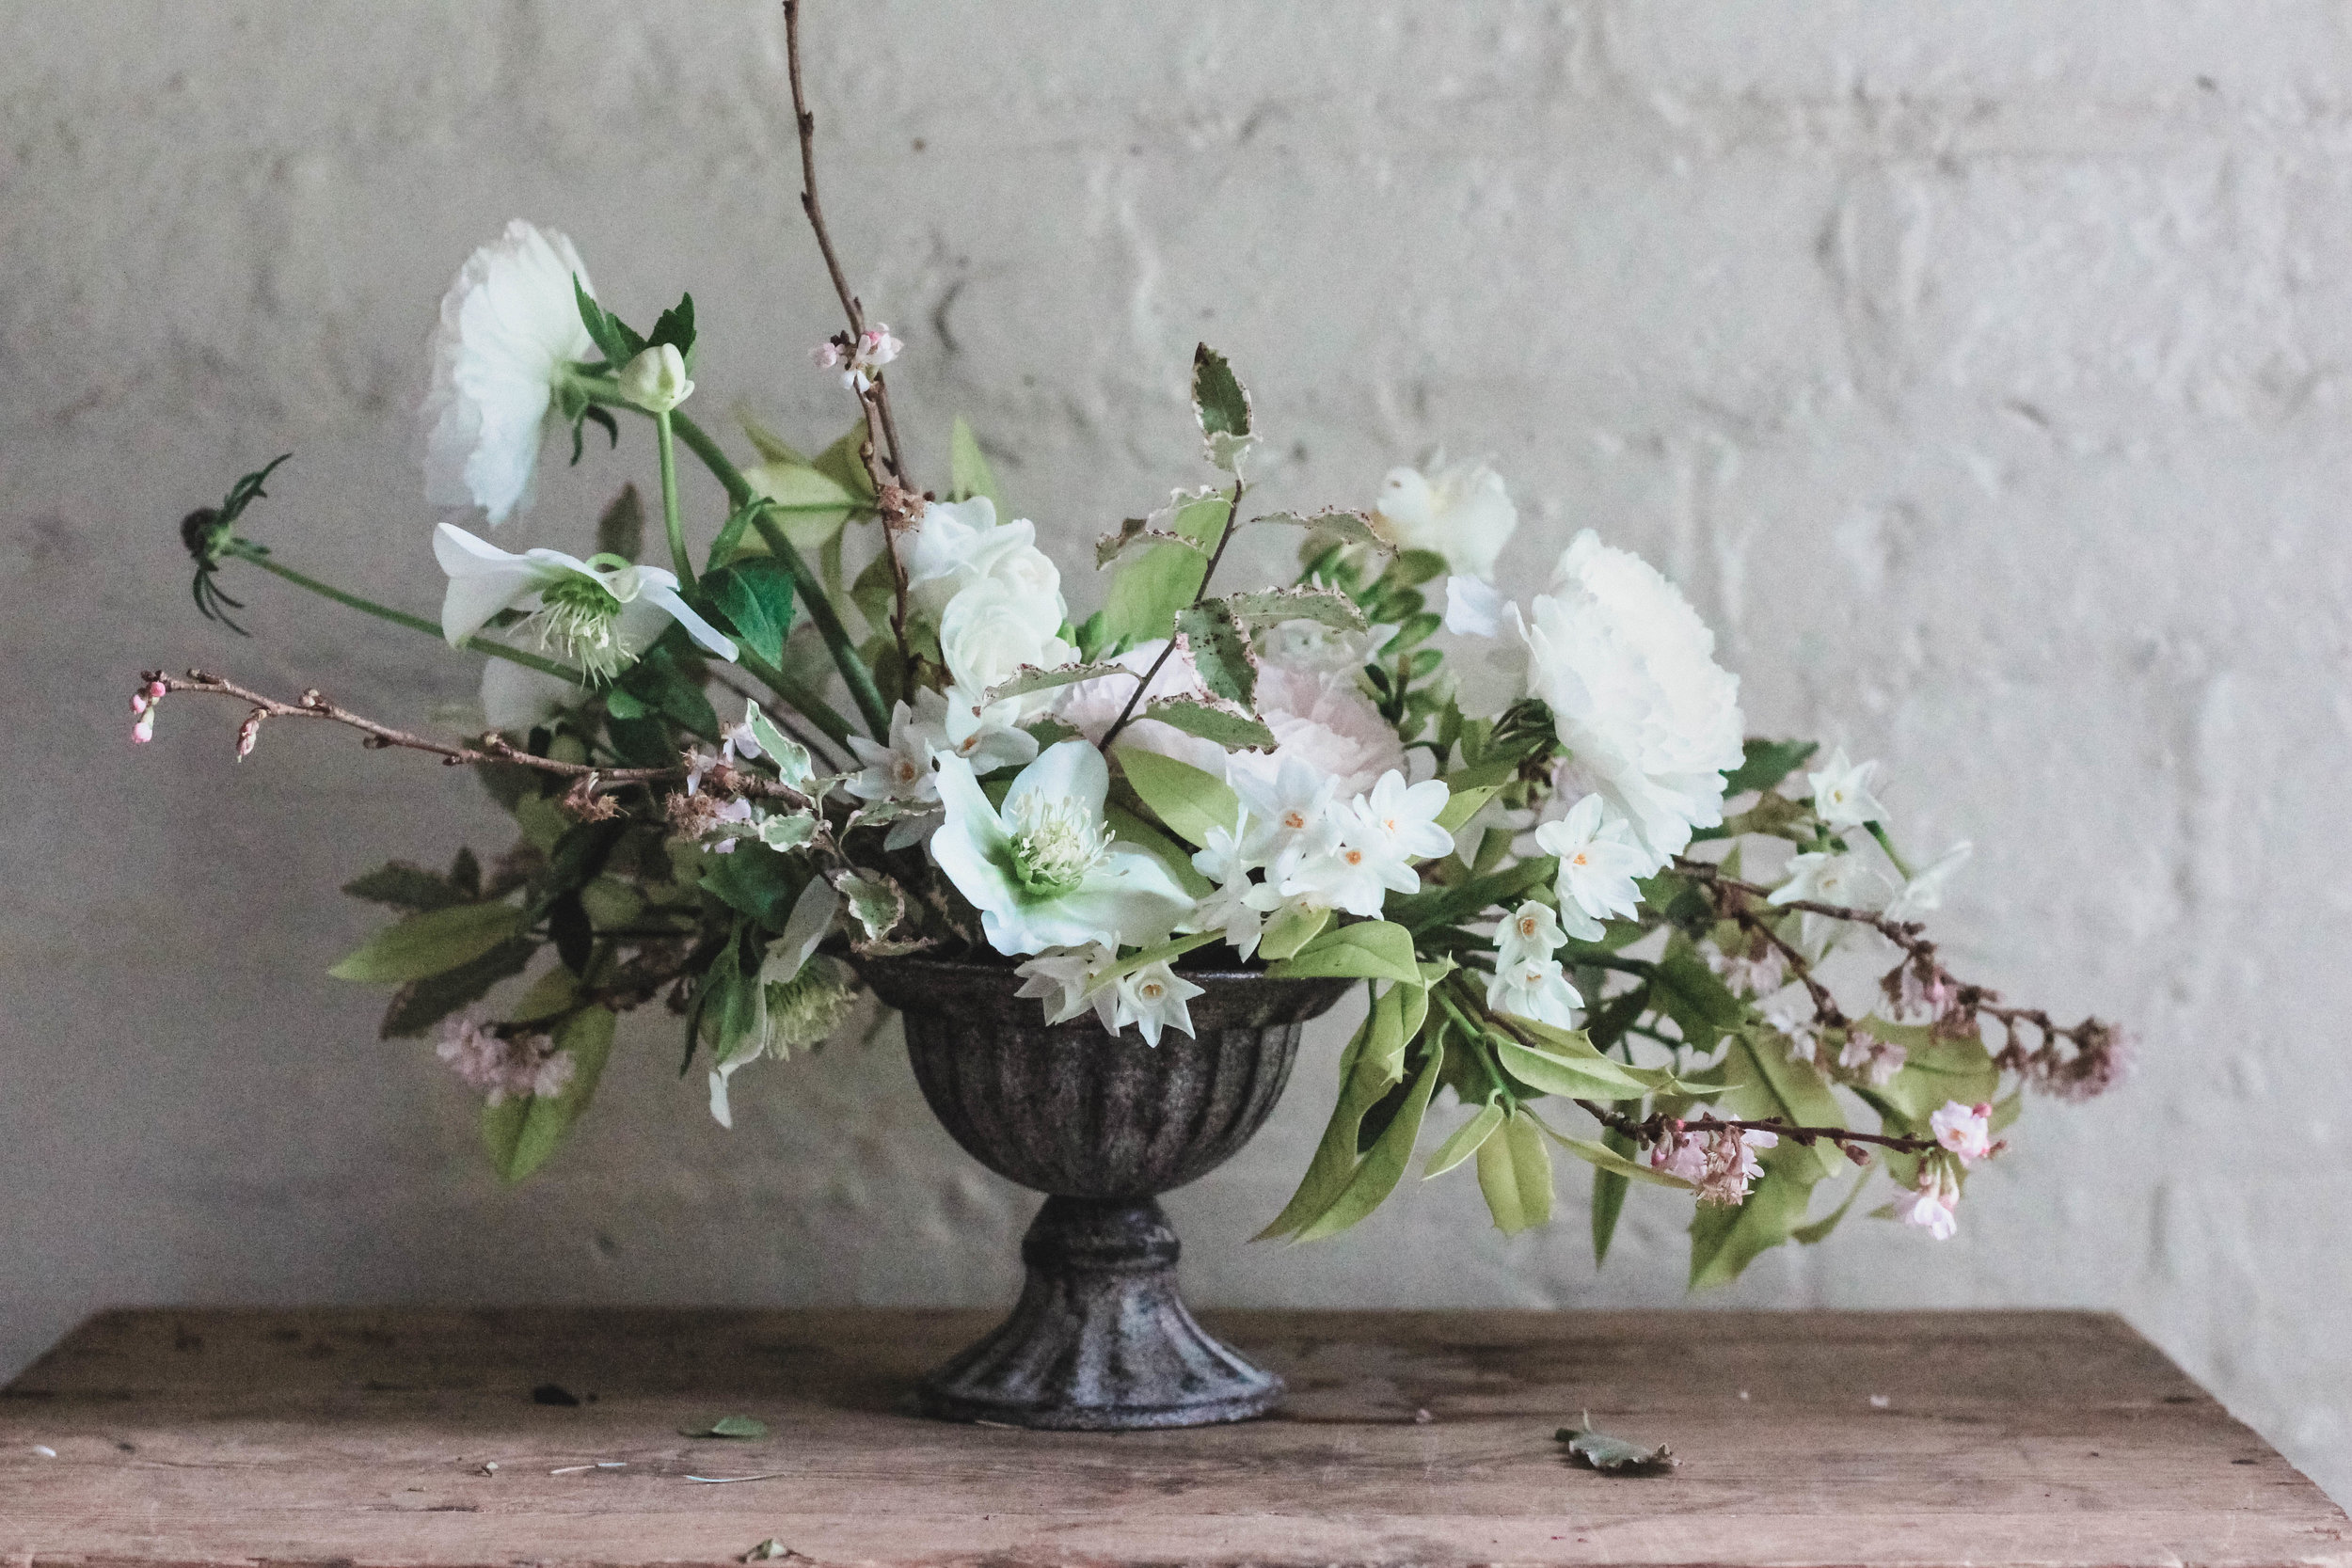 Jennifer Pinder Kent florist floristry workshop. Lots of winter flowers with a wild and natural look